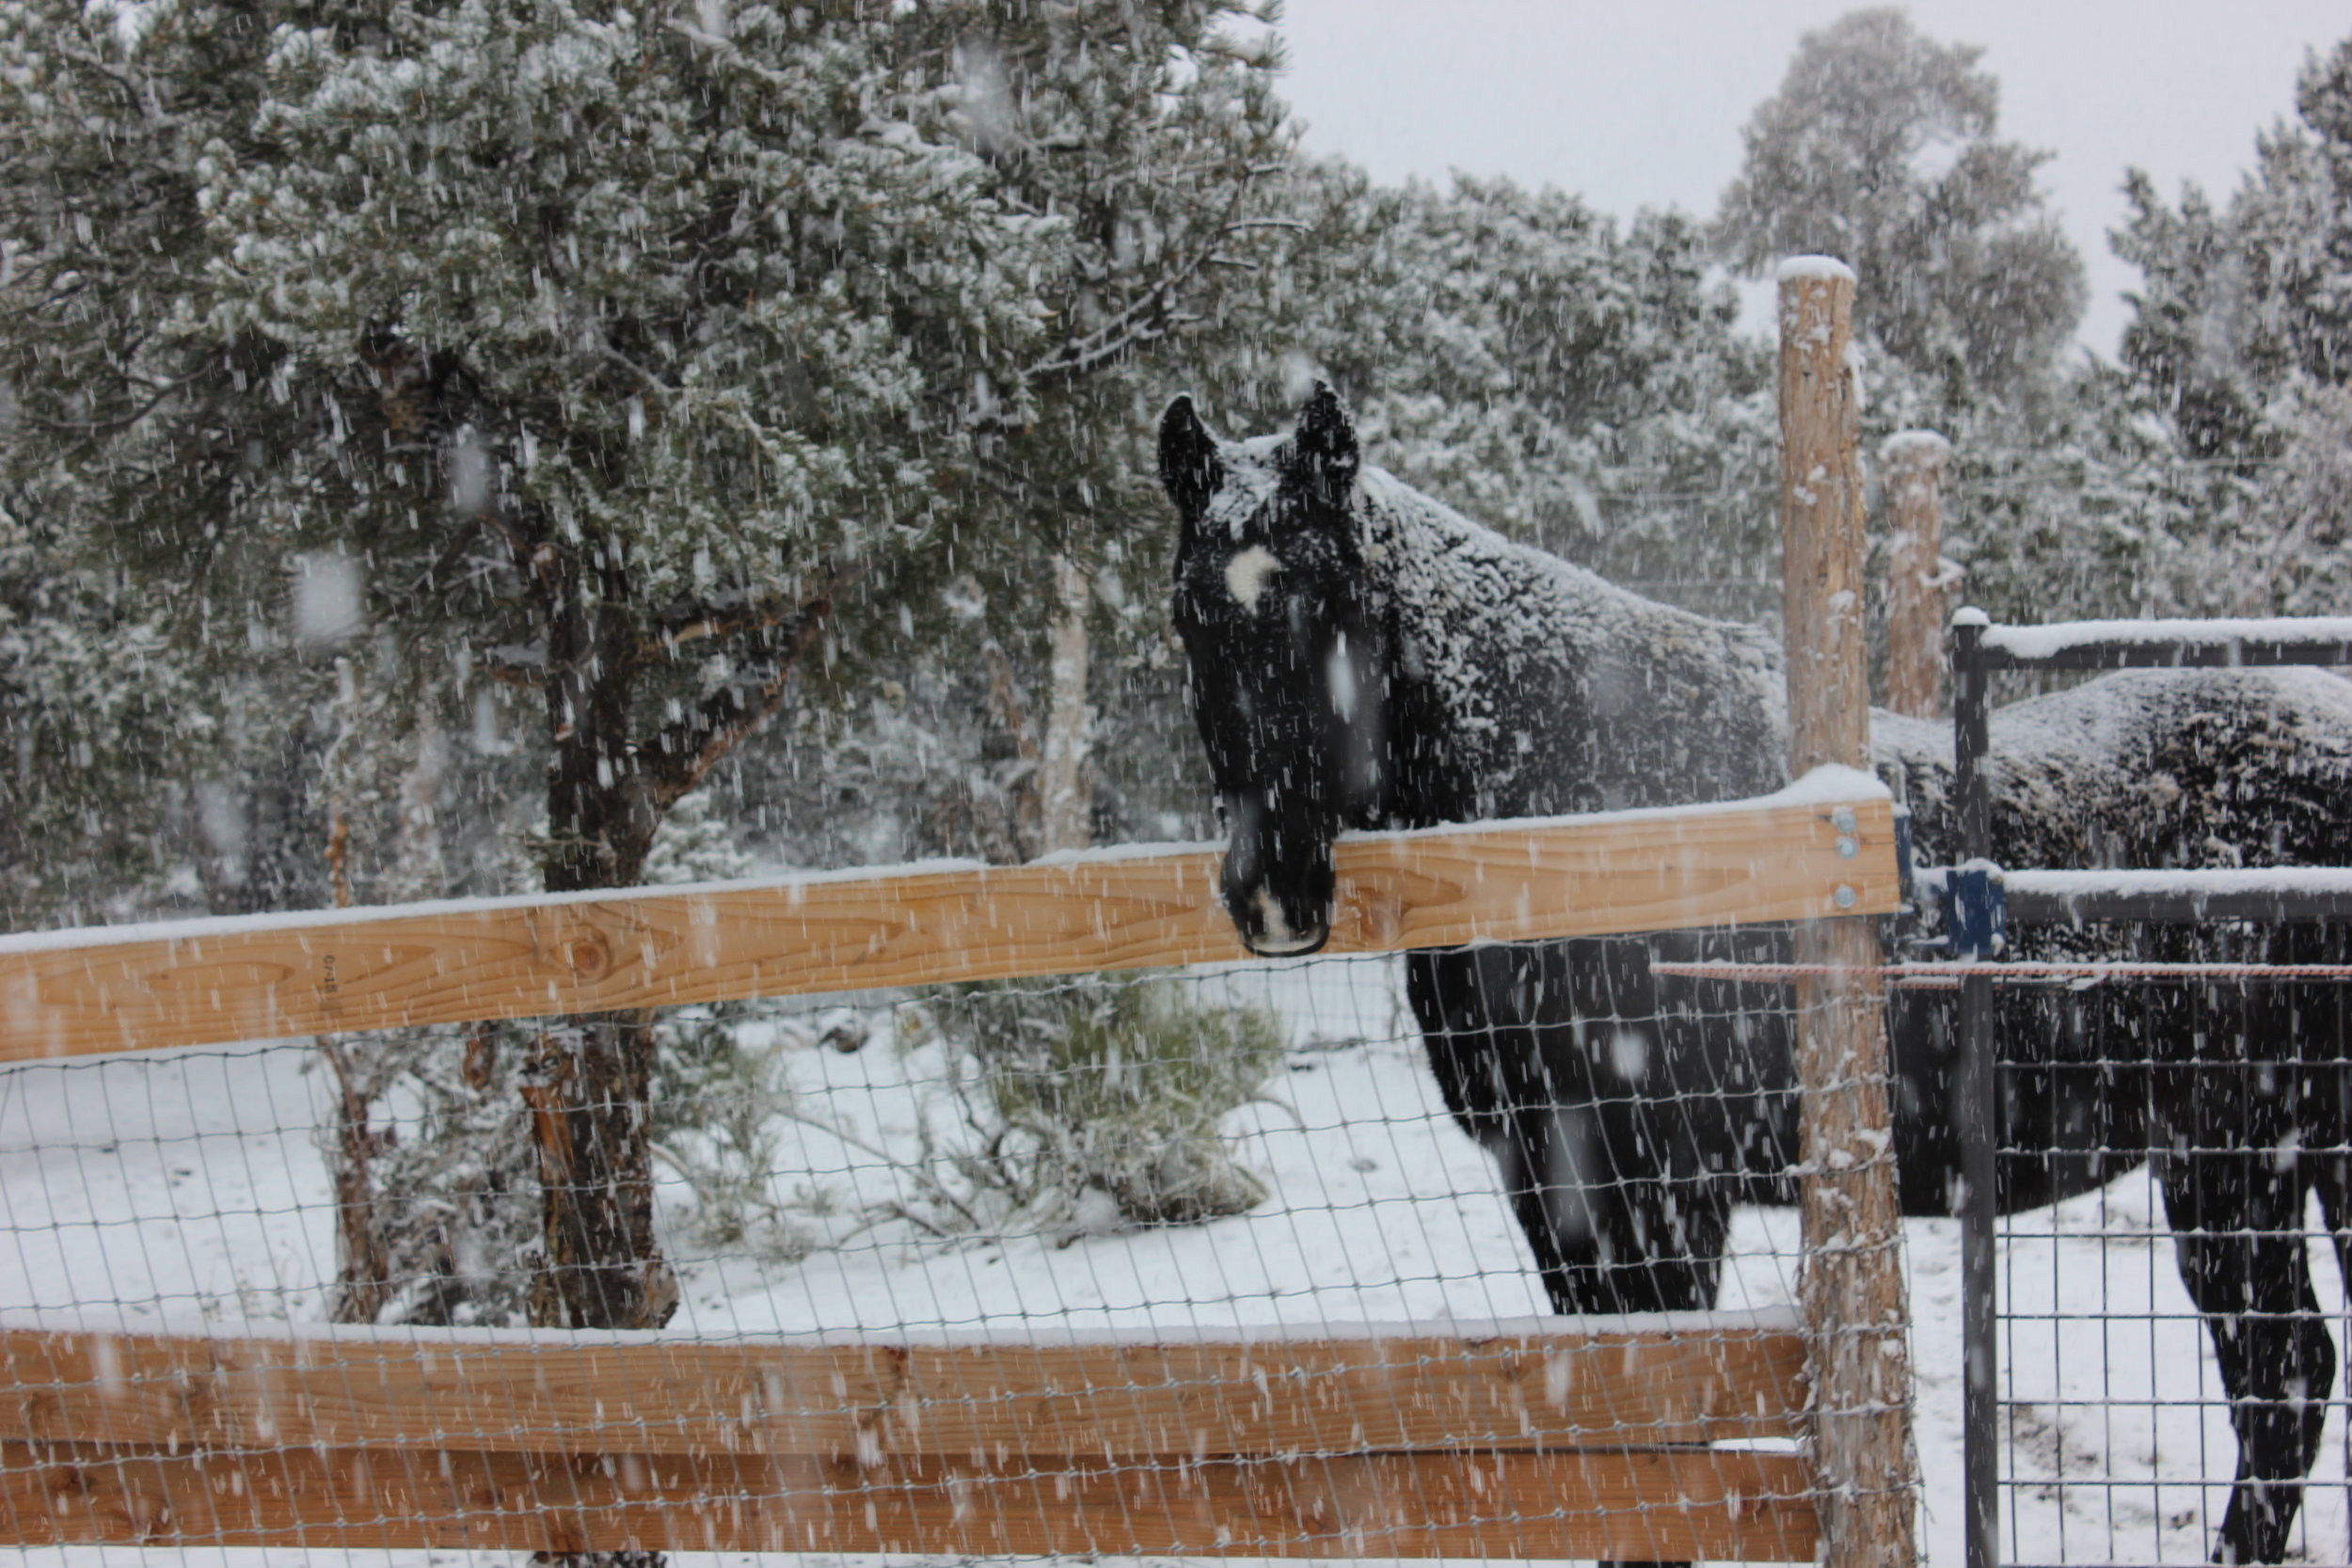 This is our horse, Bud, in the first snow of the year! Our horses are new to us---they joined our family last May, so being sure they were ready for the cold up here in the mountains was something we gave a lot of thought to.